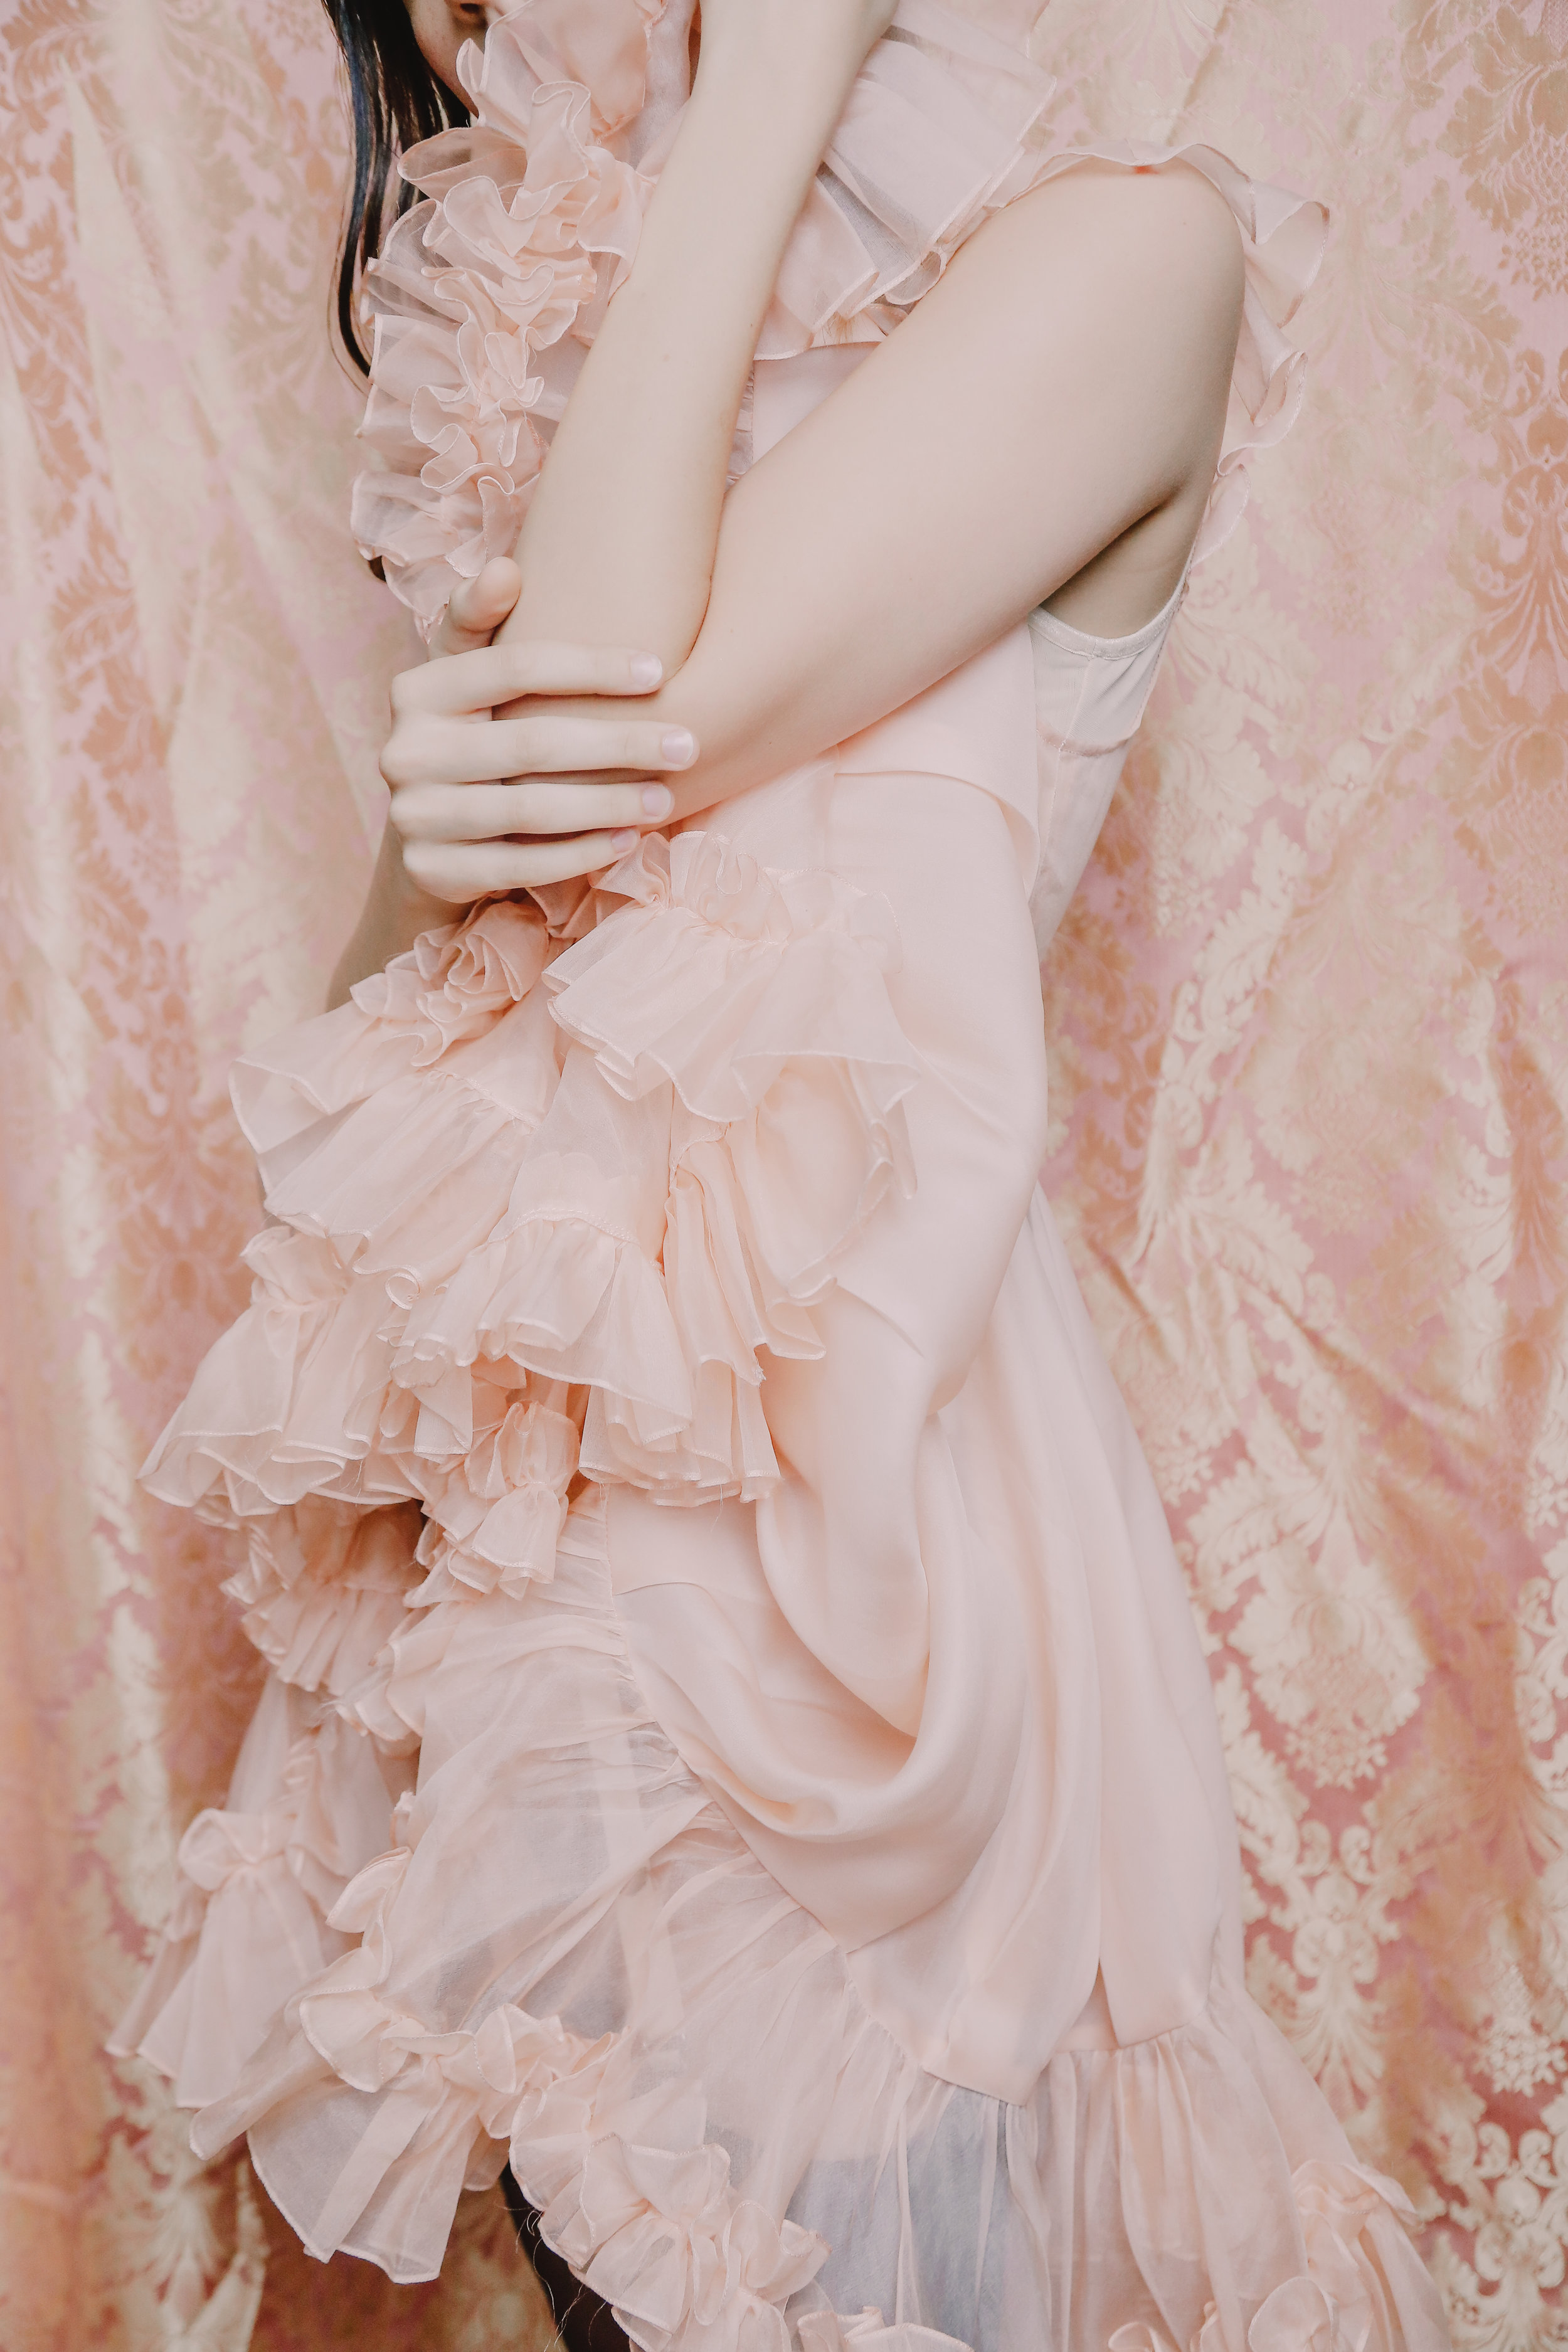 vanity teen fashion editorial featuring kelsey randall peach silk organza mermaid dress